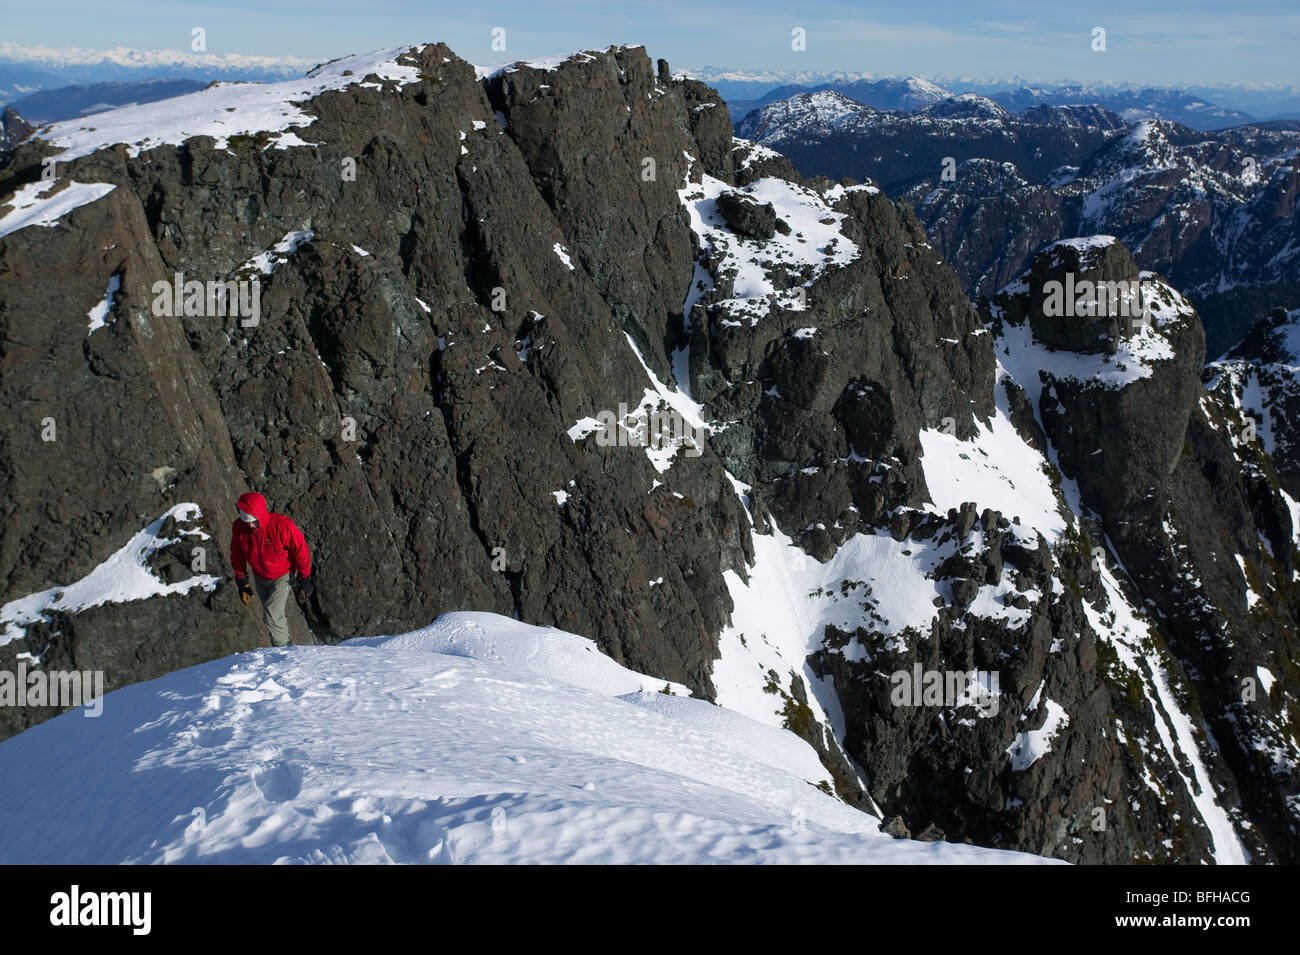 Lone climber ascends to summit snowfield of Mt. Cain looking South towards Campbell River on central Vancouver Island. - Stock Image